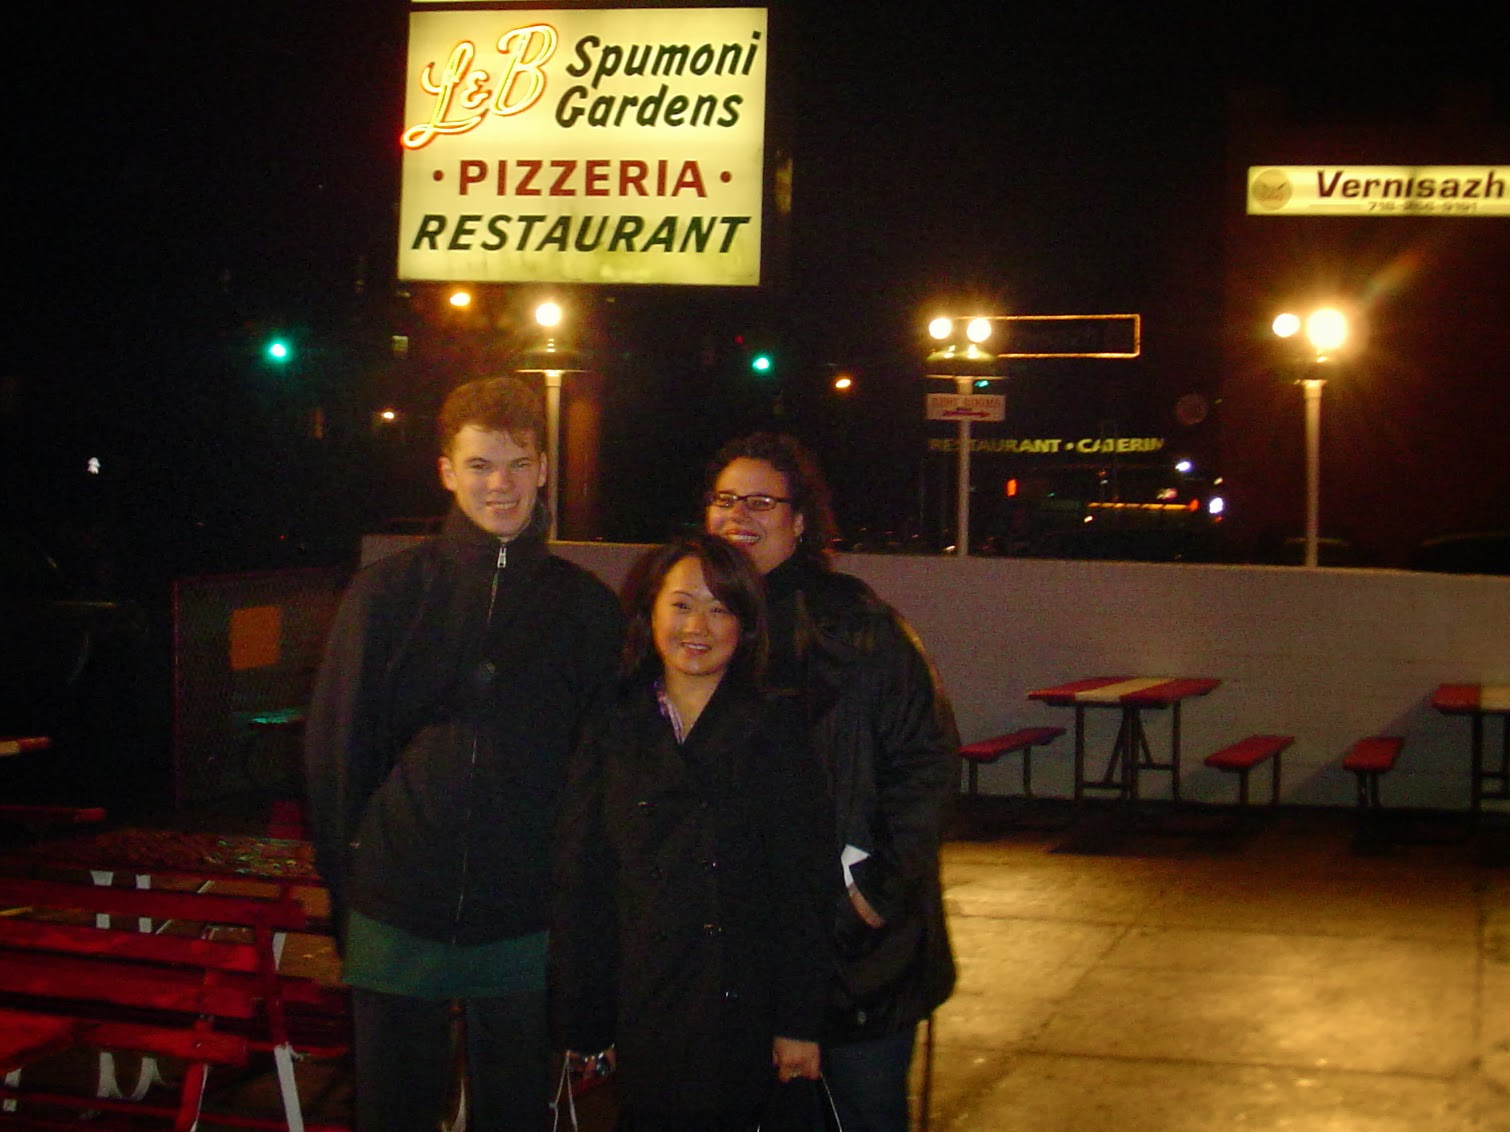 Pleasant  Days Of Pizza Day   Lb Spumoni Gardens Bensonhurst  With Luxury Location Lbs Spumoni Gardens Th St And Ave U In Bensonhurst  Brooklyn Guests Michelle Dobrawsky Rachel Caruso Order  Slice Of  Cheese  With Appealing Garden Jobs For January Also Etc Hatton Garden In Addition Garden Centre Windsor And Live Music In Covent Garden As Well As Duncairn Gardens Belfast Additionally Garden Parasol From Daysofpizzablogspotcom With   Luxury  Days Of Pizza Day   Lb Spumoni Gardens Bensonhurst  With Appealing Location Lbs Spumoni Gardens Th St And Ave U In Bensonhurst  Brooklyn Guests Michelle Dobrawsky Rachel Caruso Order  Slice Of  Cheese  And Pleasant Garden Jobs For January Also Etc Hatton Garden In Addition Garden Centre Windsor From Daysofpizzablogspotcom